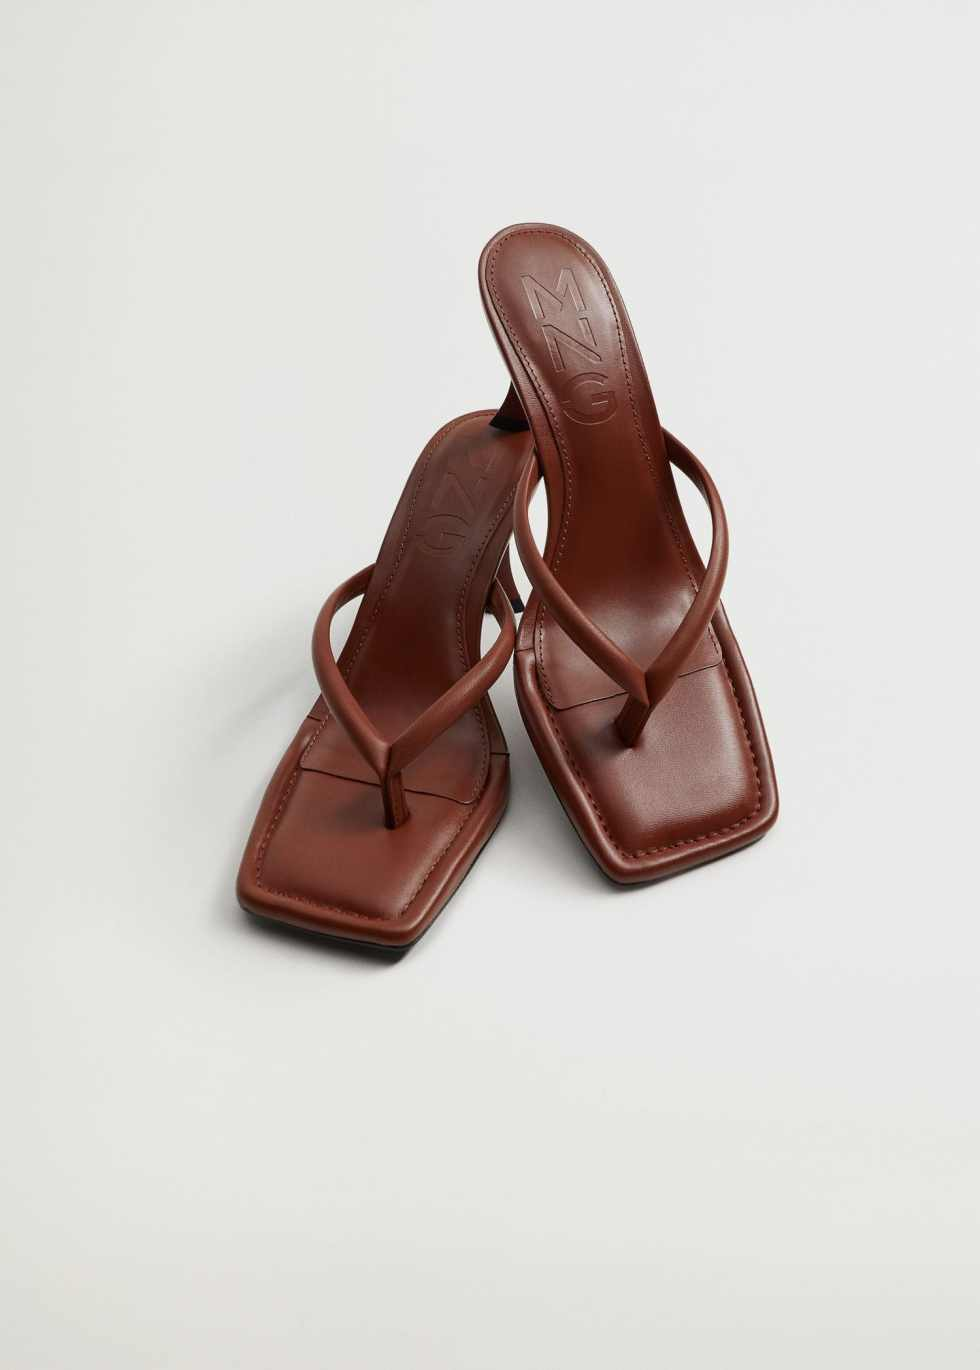 Heel leather sandals - Details of the article 4